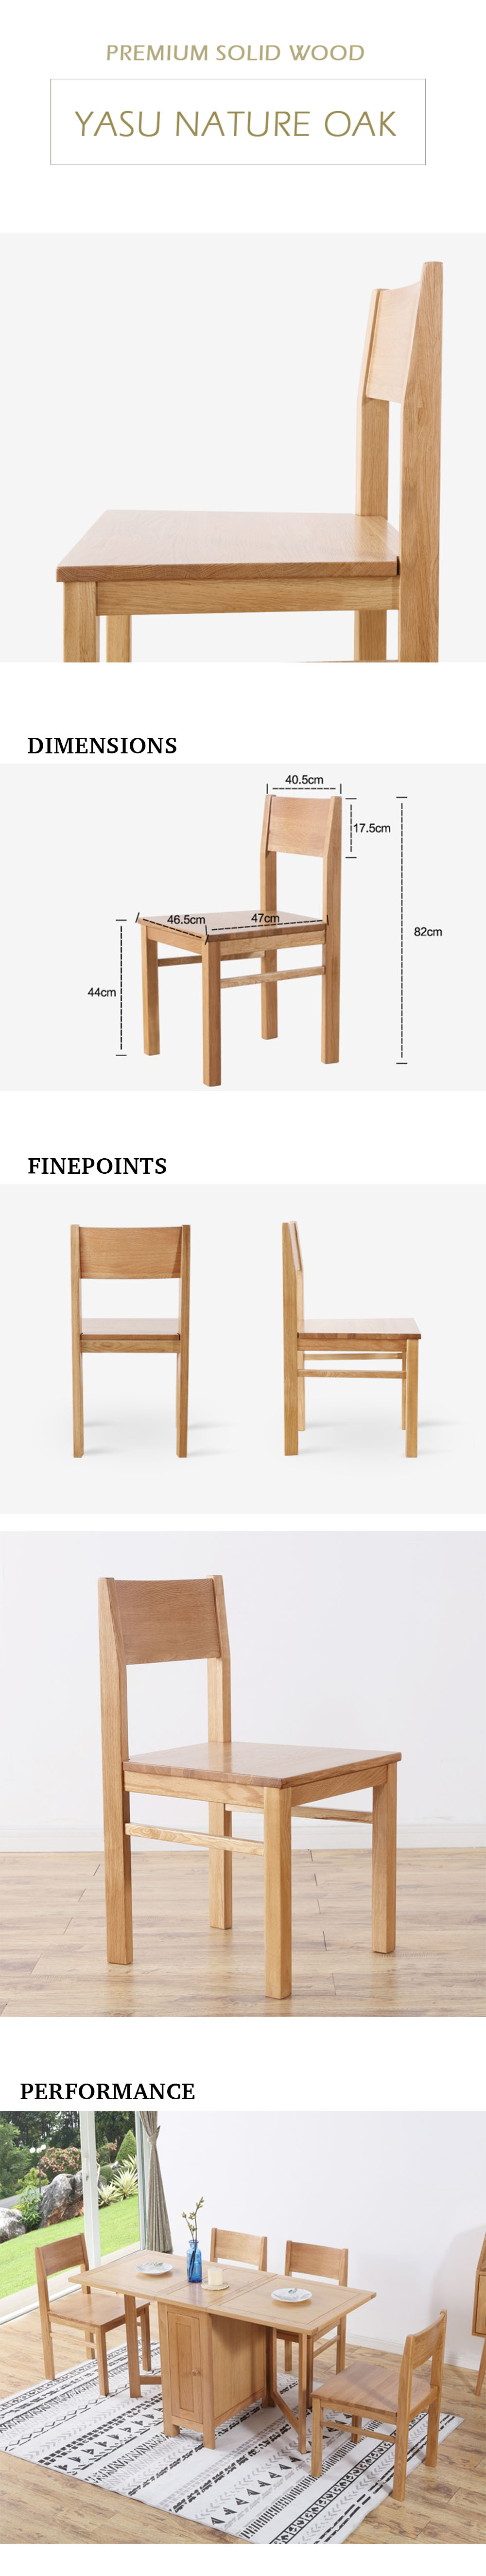 yasu_nature_oak_dining_chair_by_born_in_colour